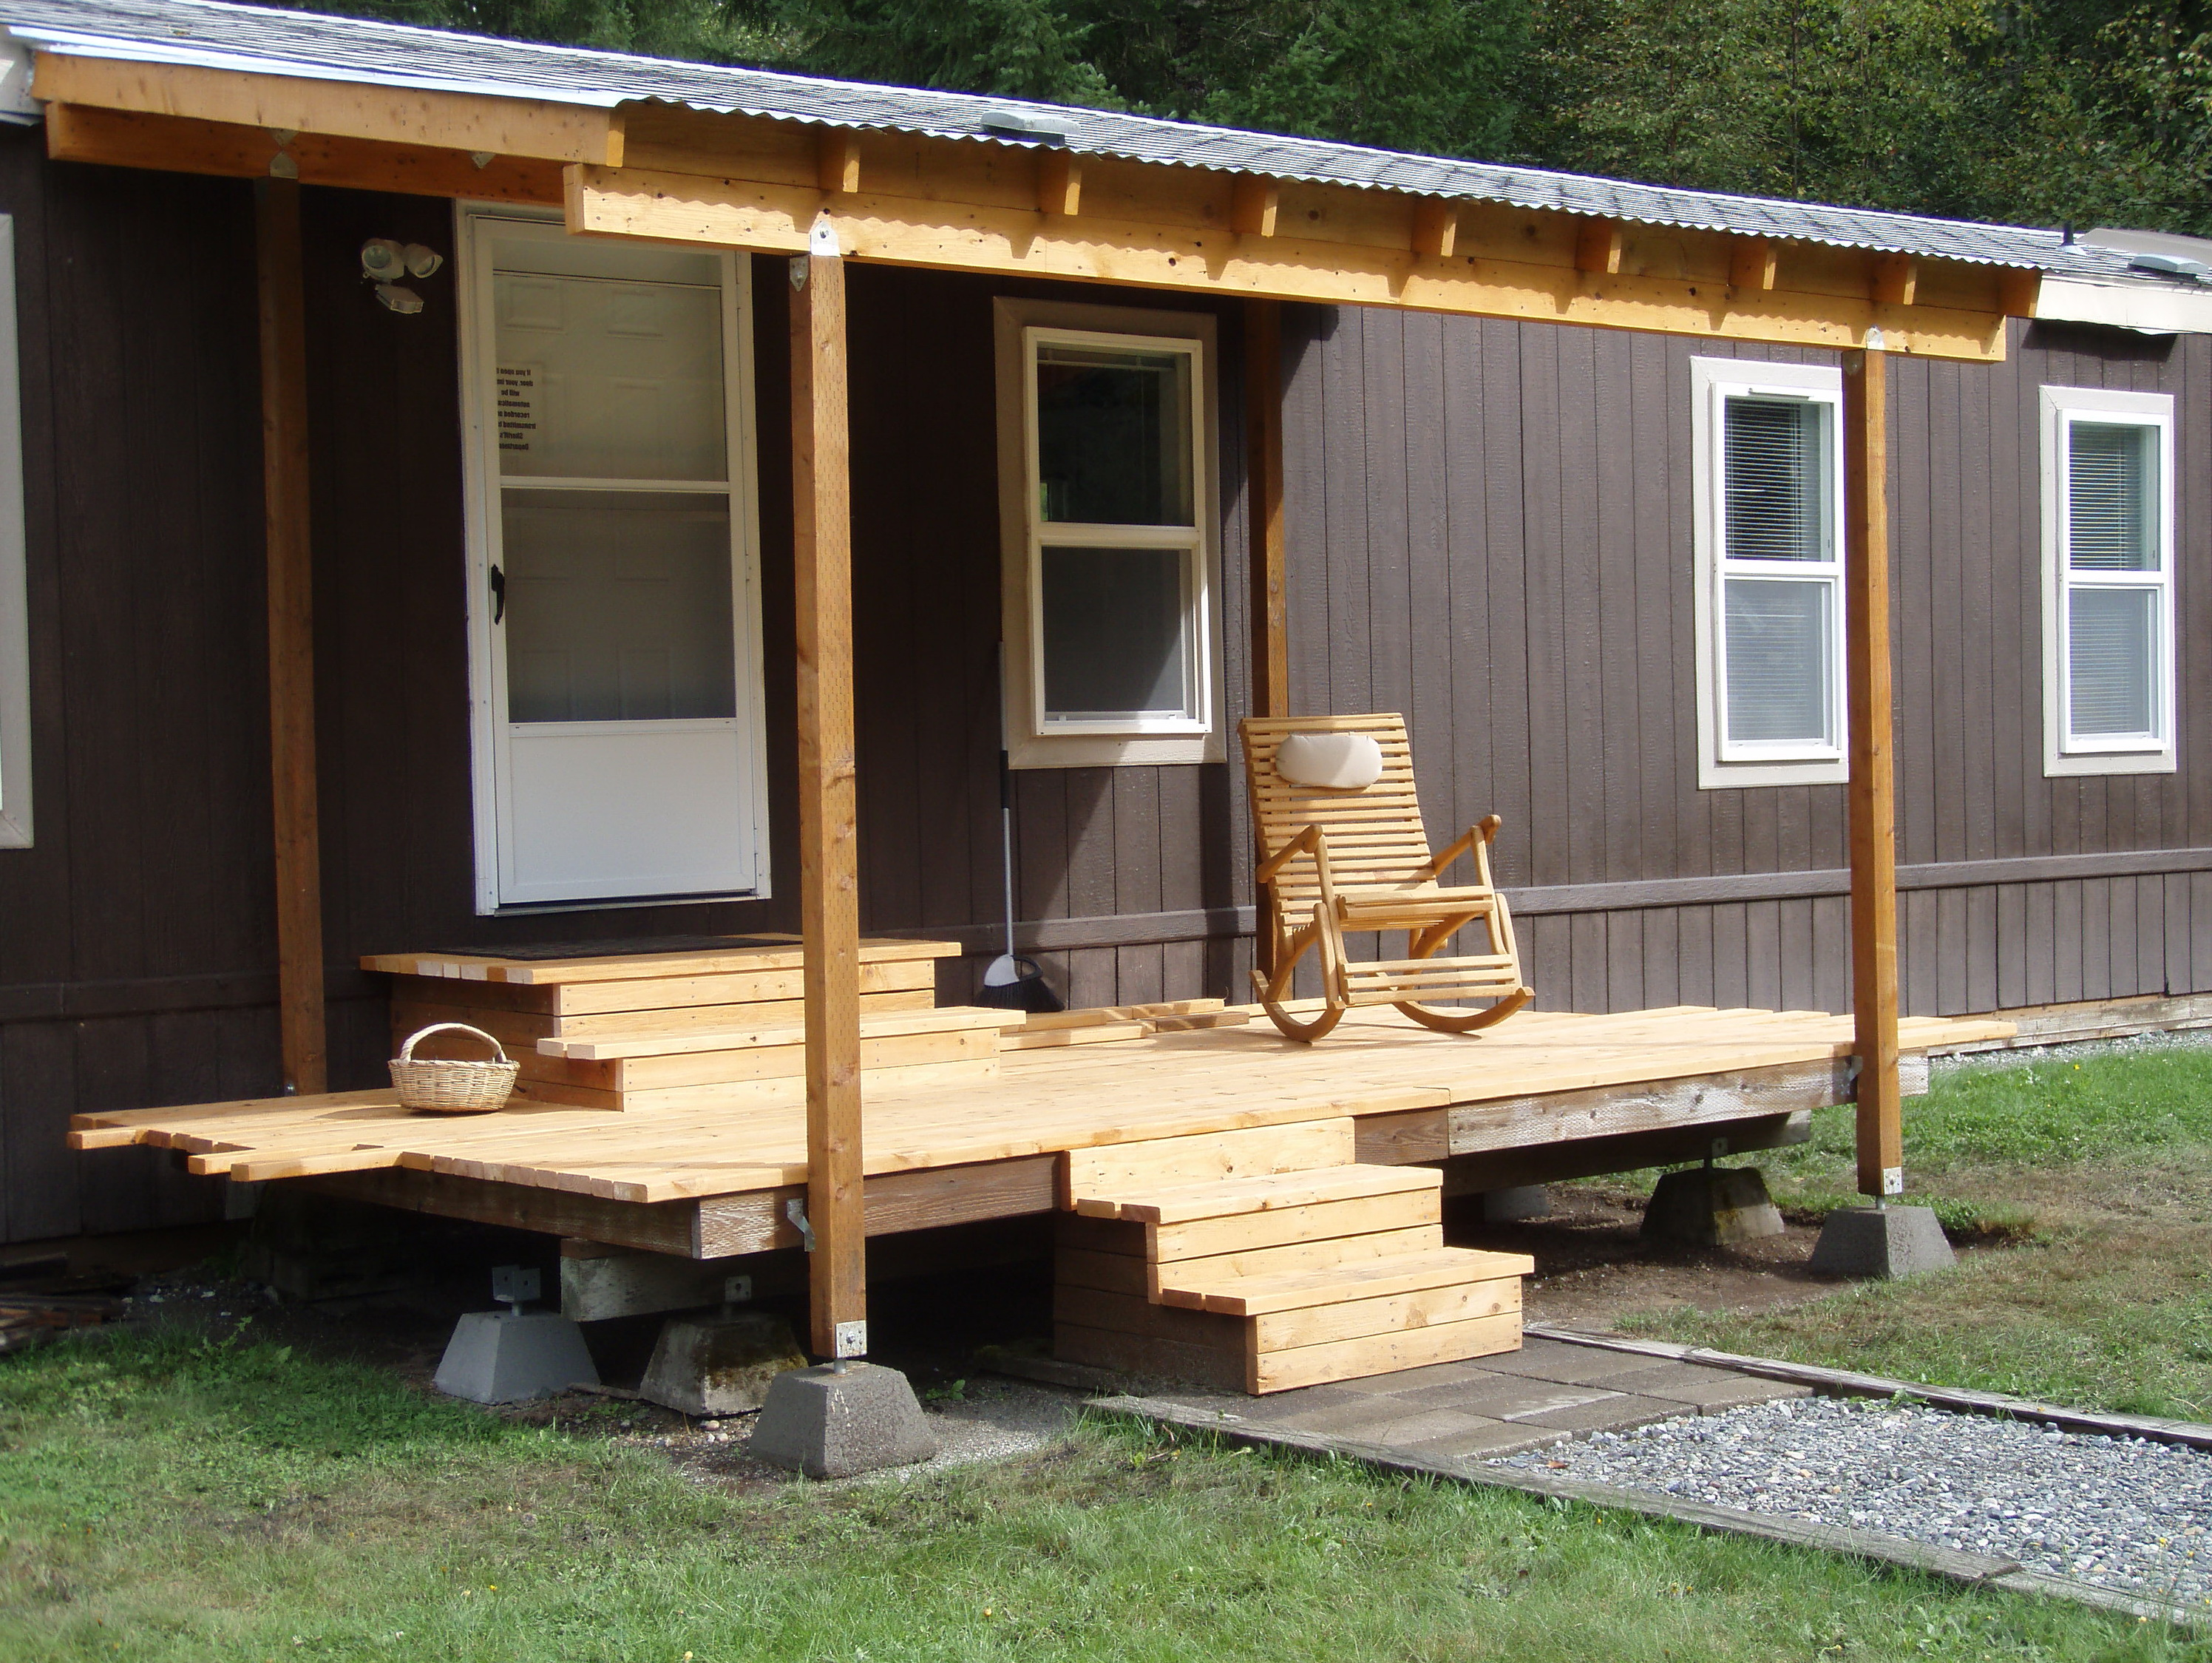 Inspiring Home Design Ideas with Mobile Home Porches: Mobile Home Porches | Mobile Home Entrance Steps | Mobile Home Porch Ideas